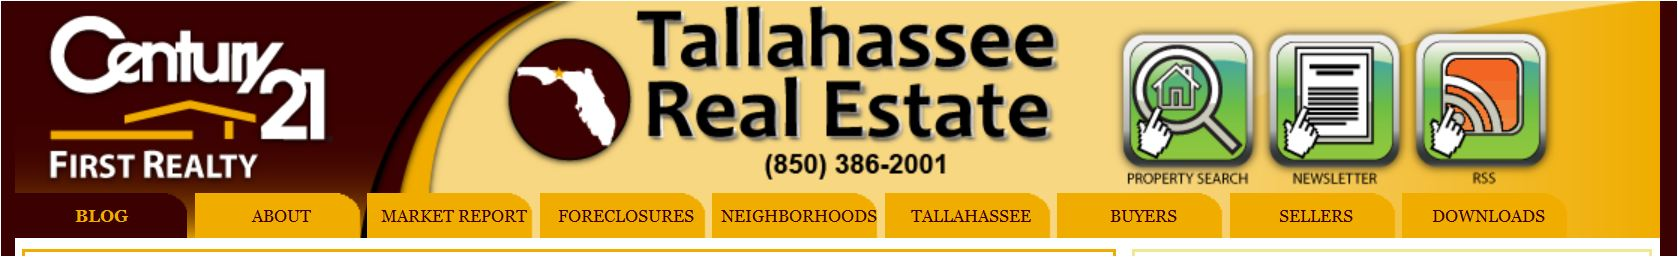 Tallahassee Real Estate Web Site Navigation